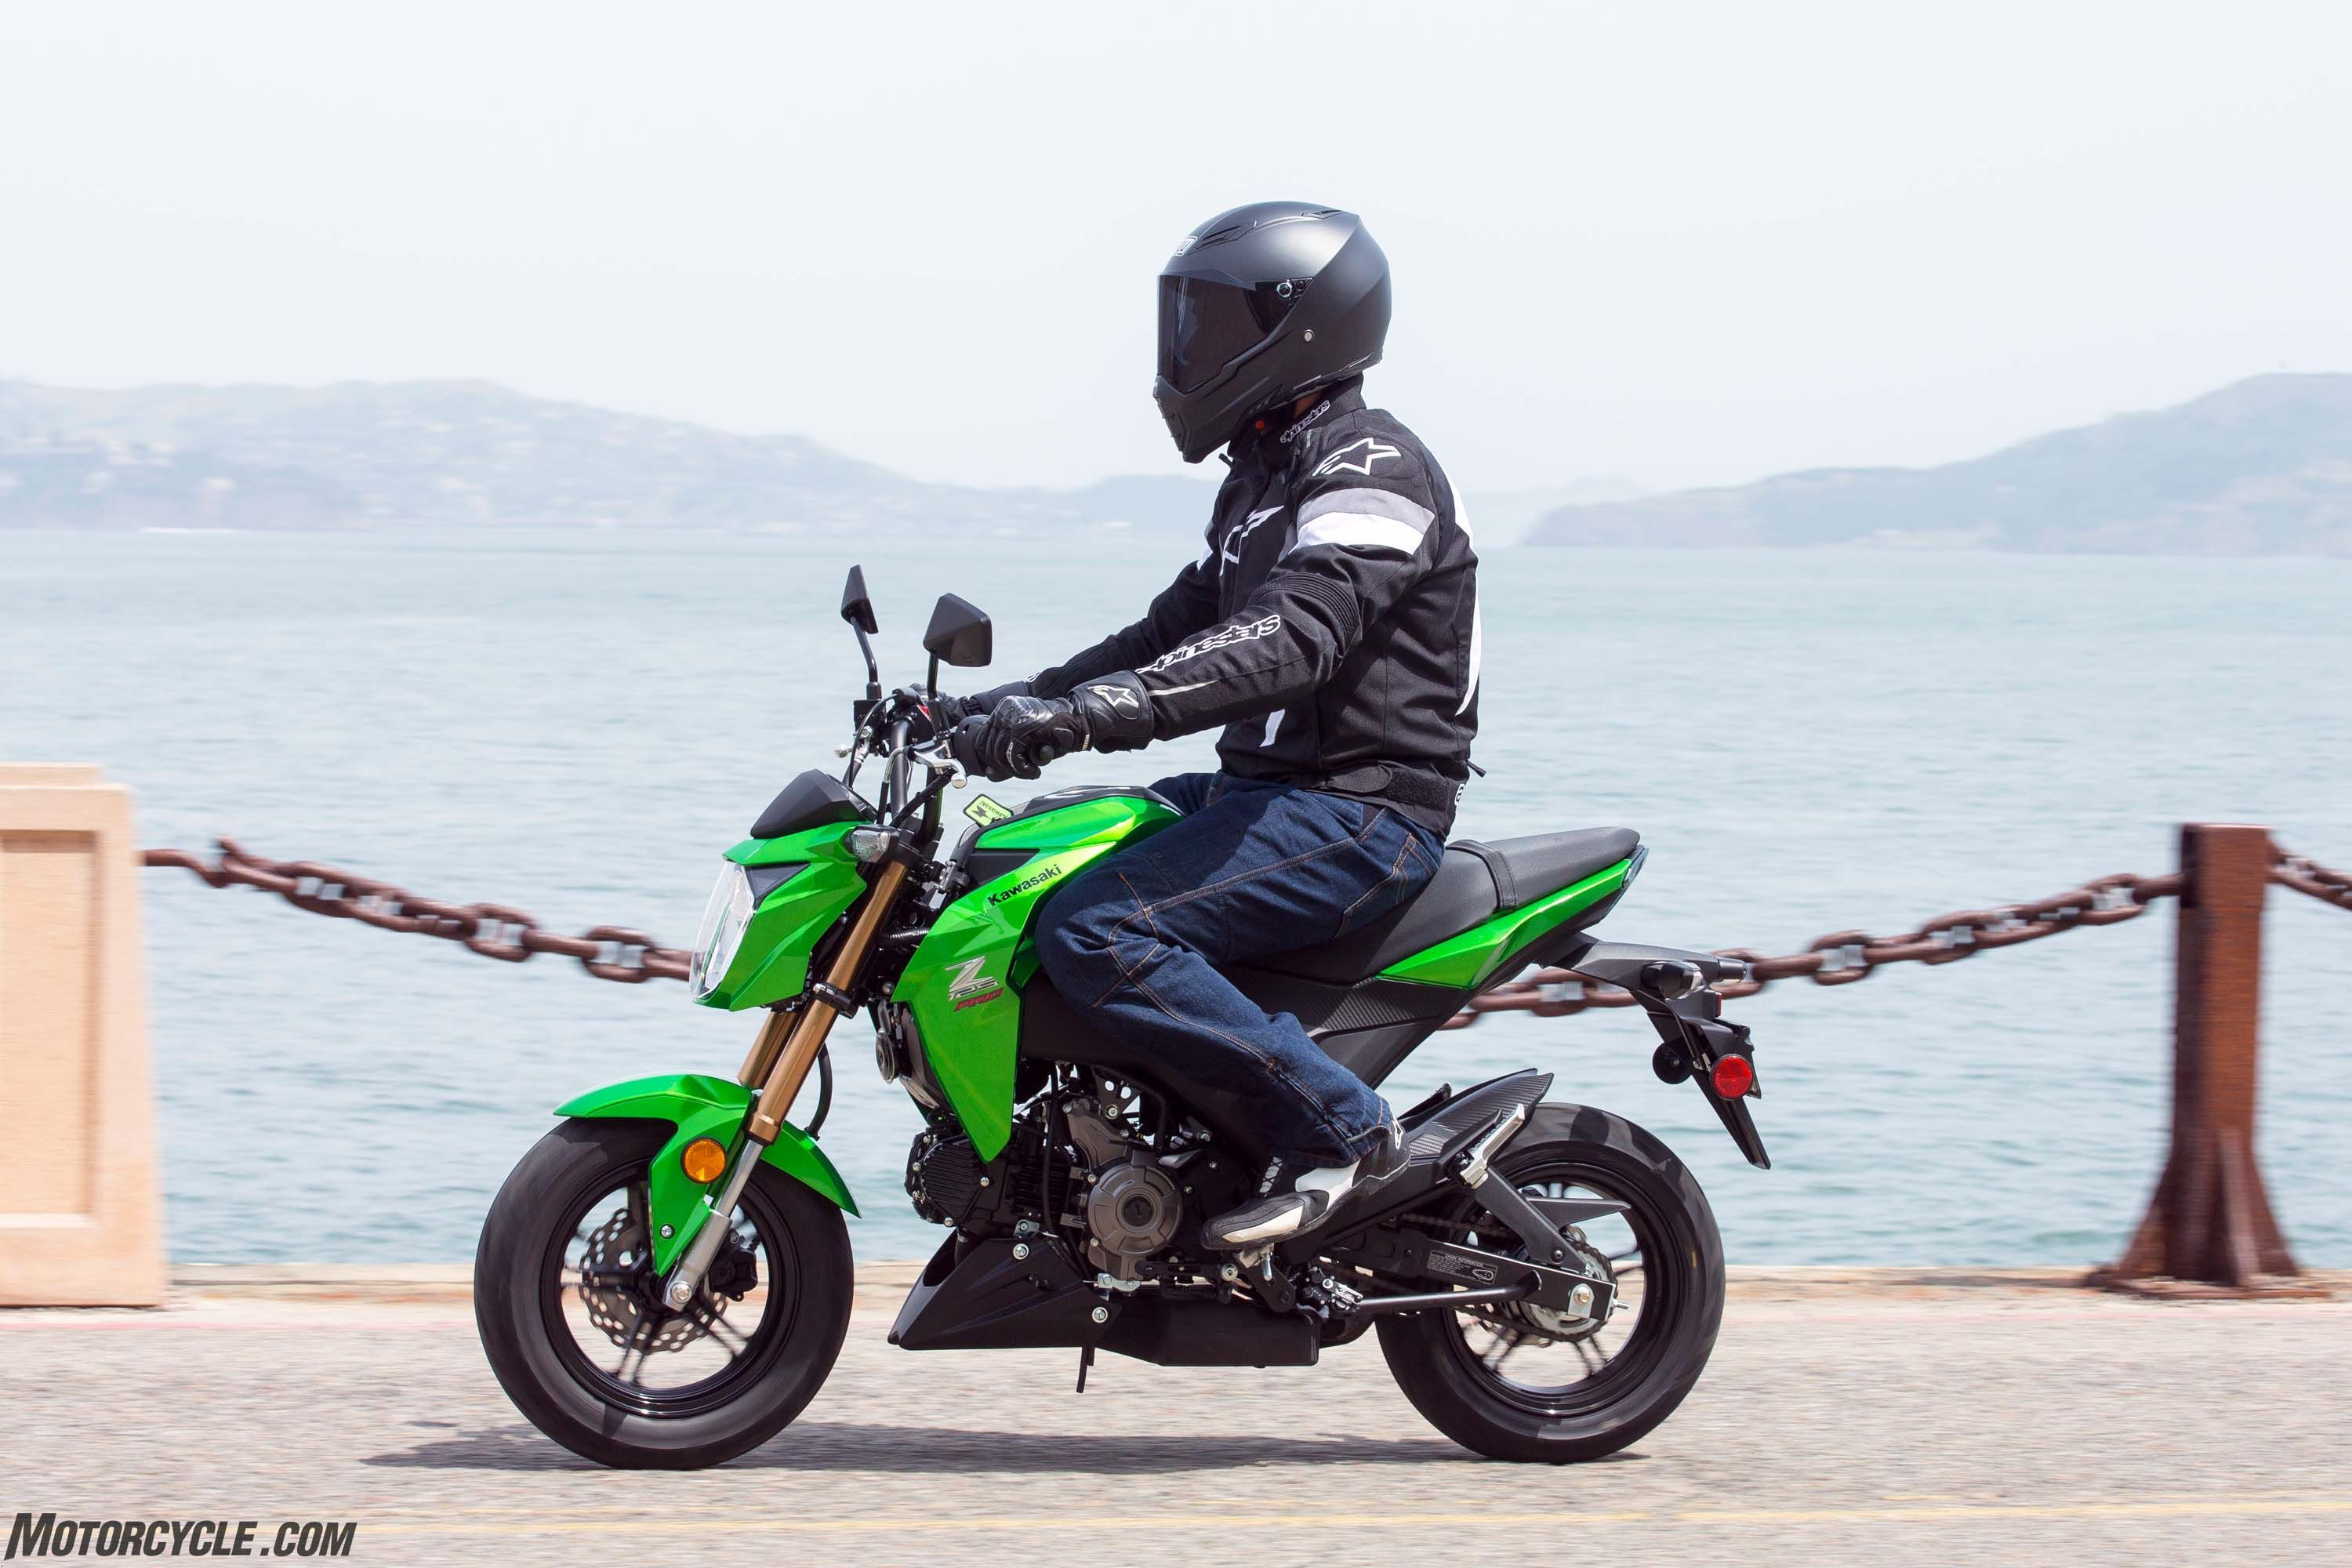 2017 Kawasaki Z125 Pro >> Kawasaki Z125 Pro 2017 Kawasaki Z125 Pro First Ride Review